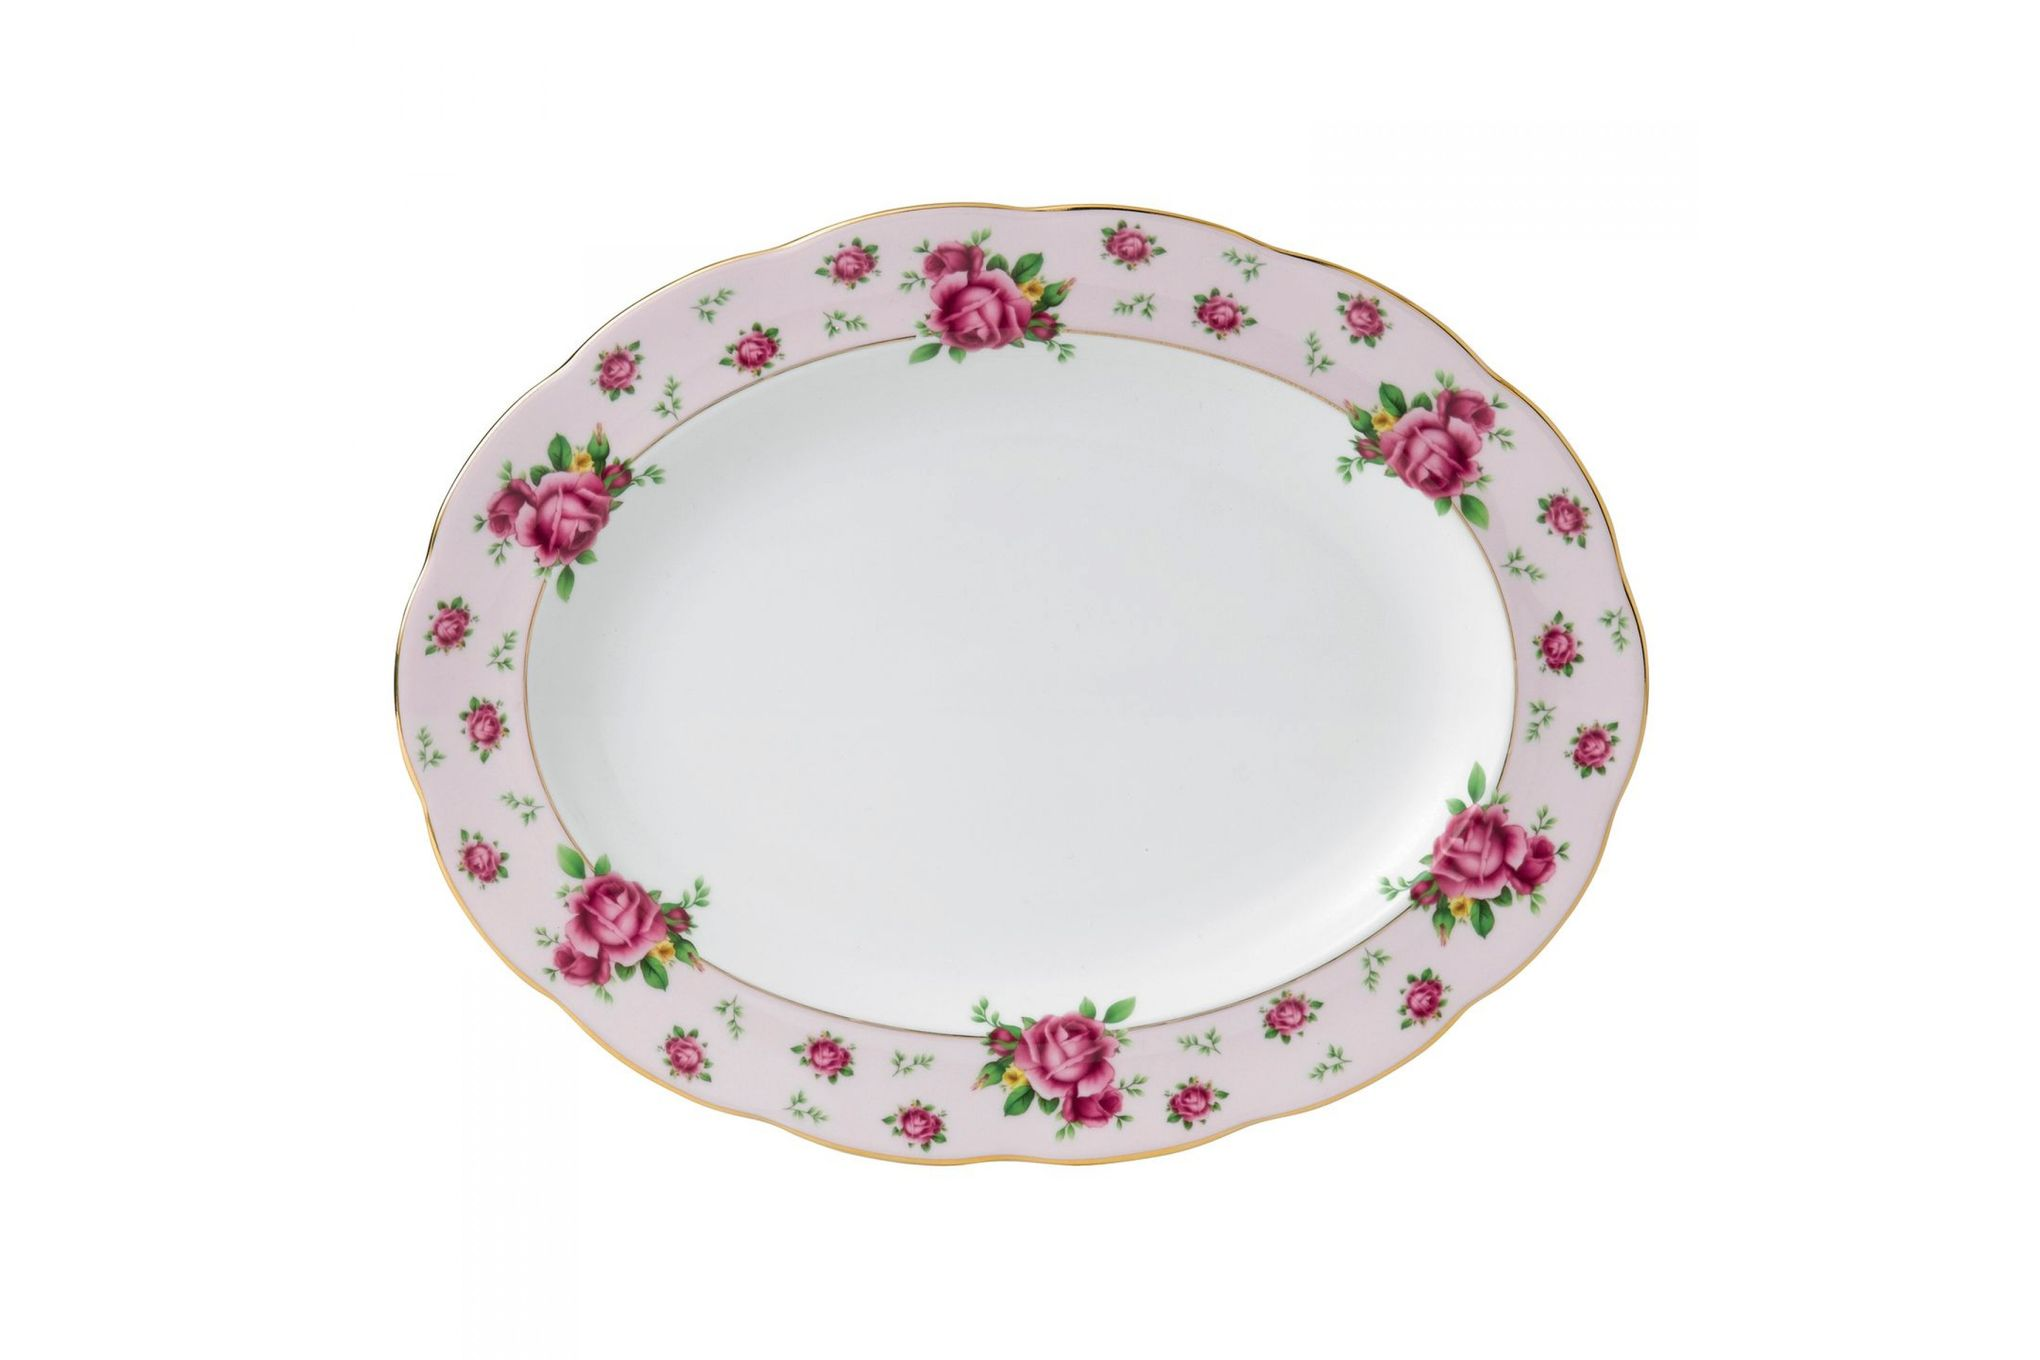 Royal Albert New Country Roses Pink Oval Platter 33cm thumb 1